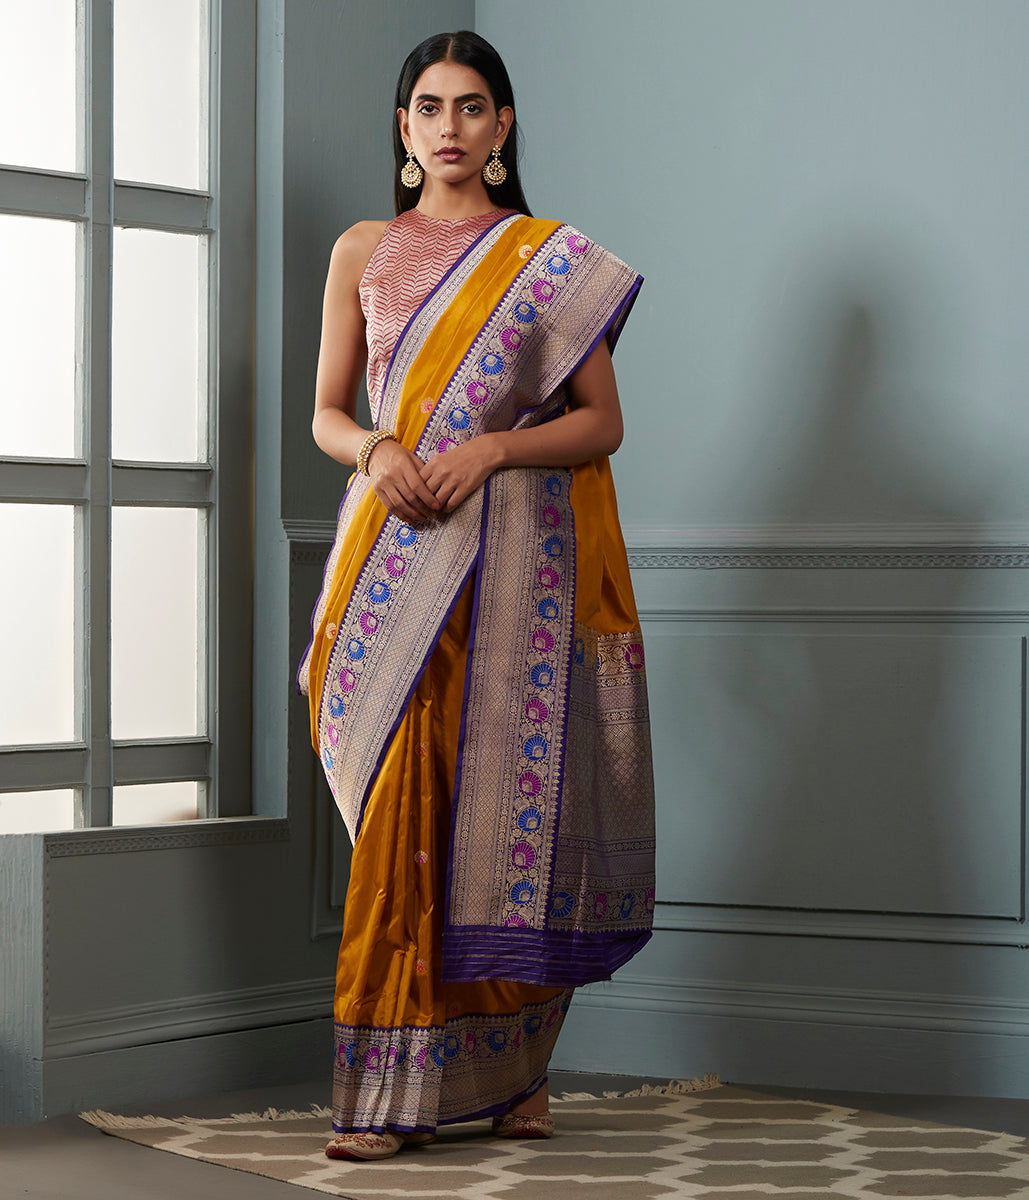 Mustard Yellow katan silk saree with a purple meenakari border